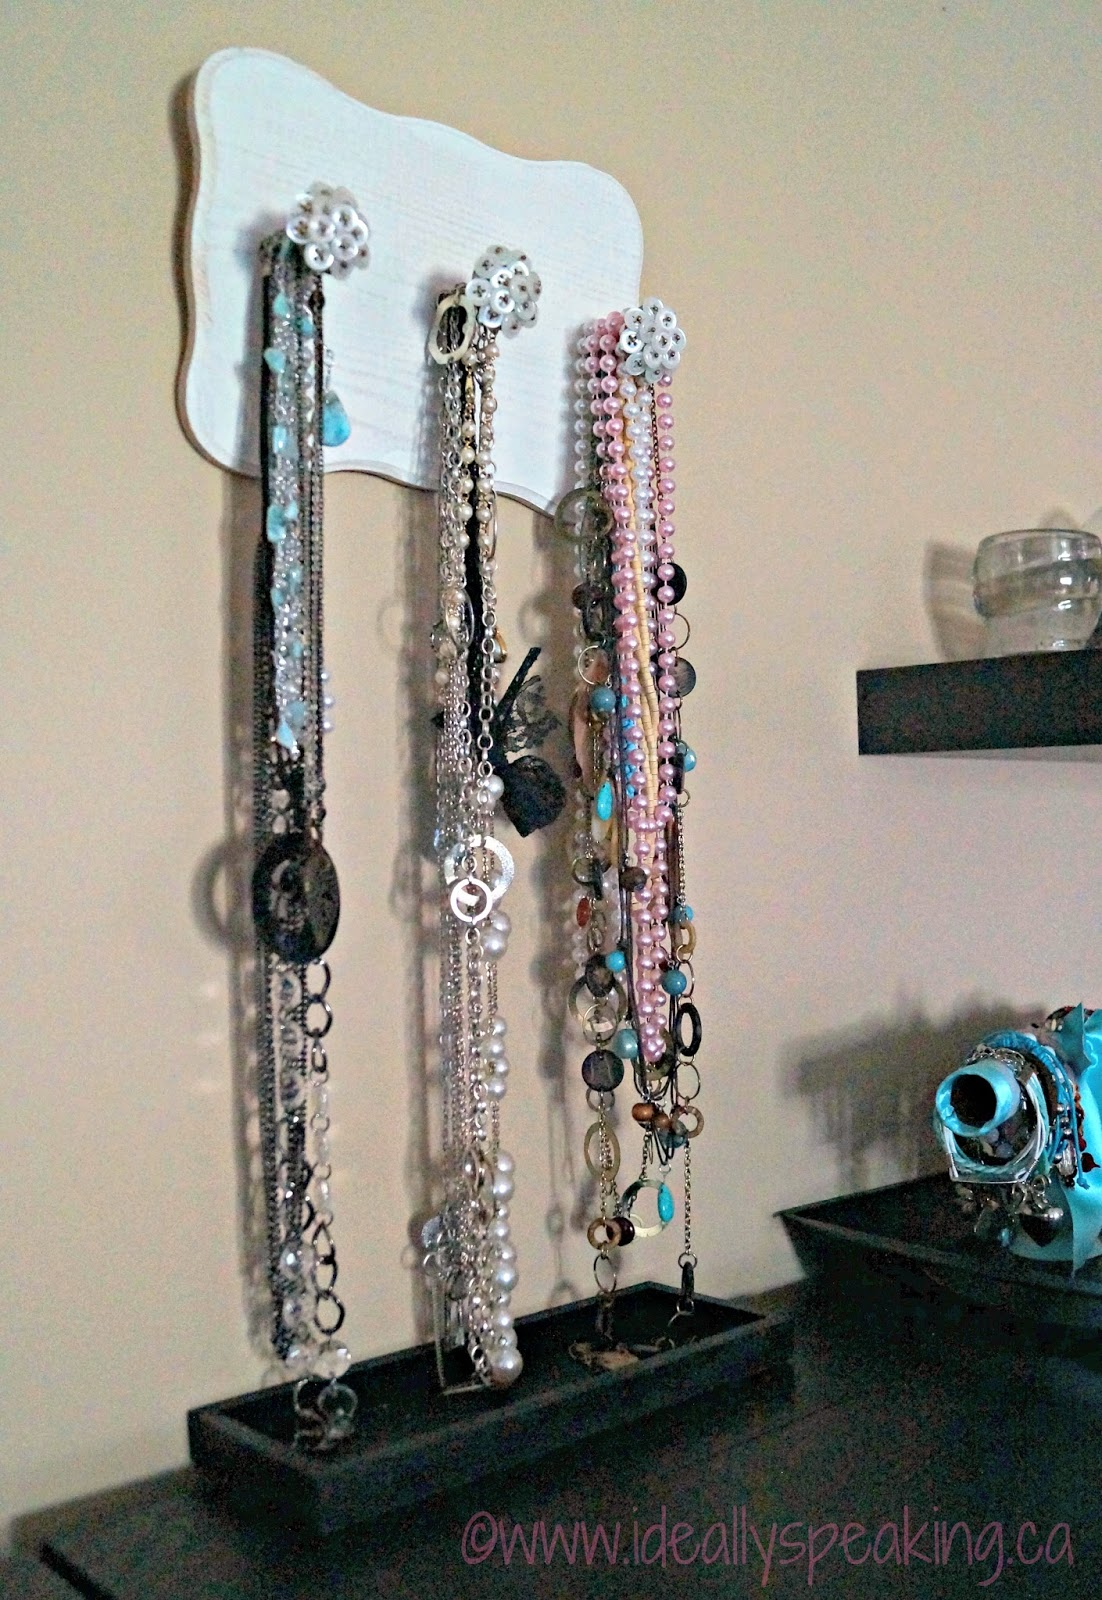 DIY necklace holder. Cute way to keep your jewelry on display. So dainty!